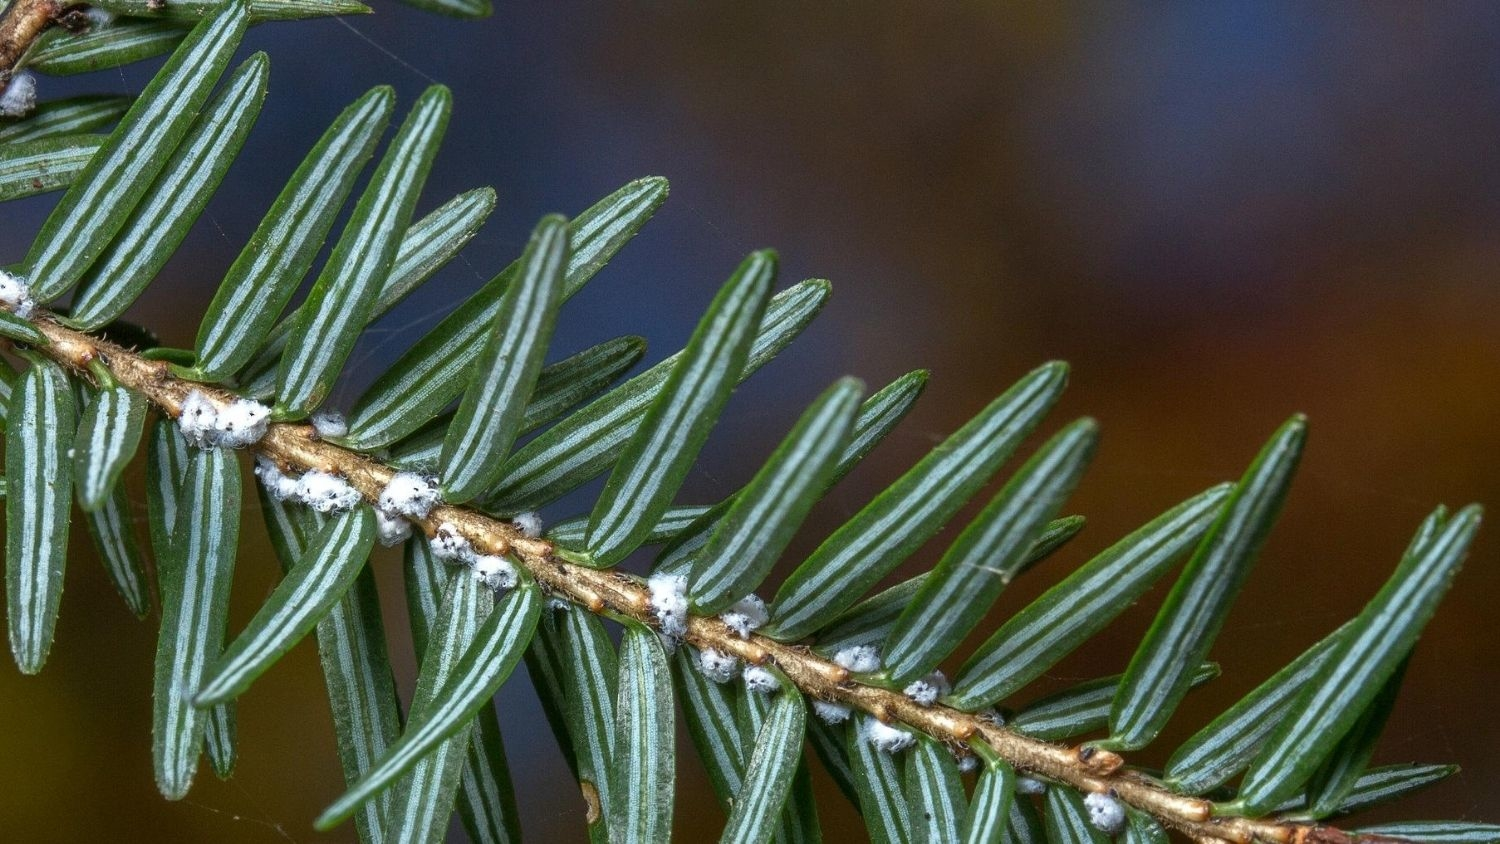 Hemlock woolly adelgid, a sap-sucking insect.